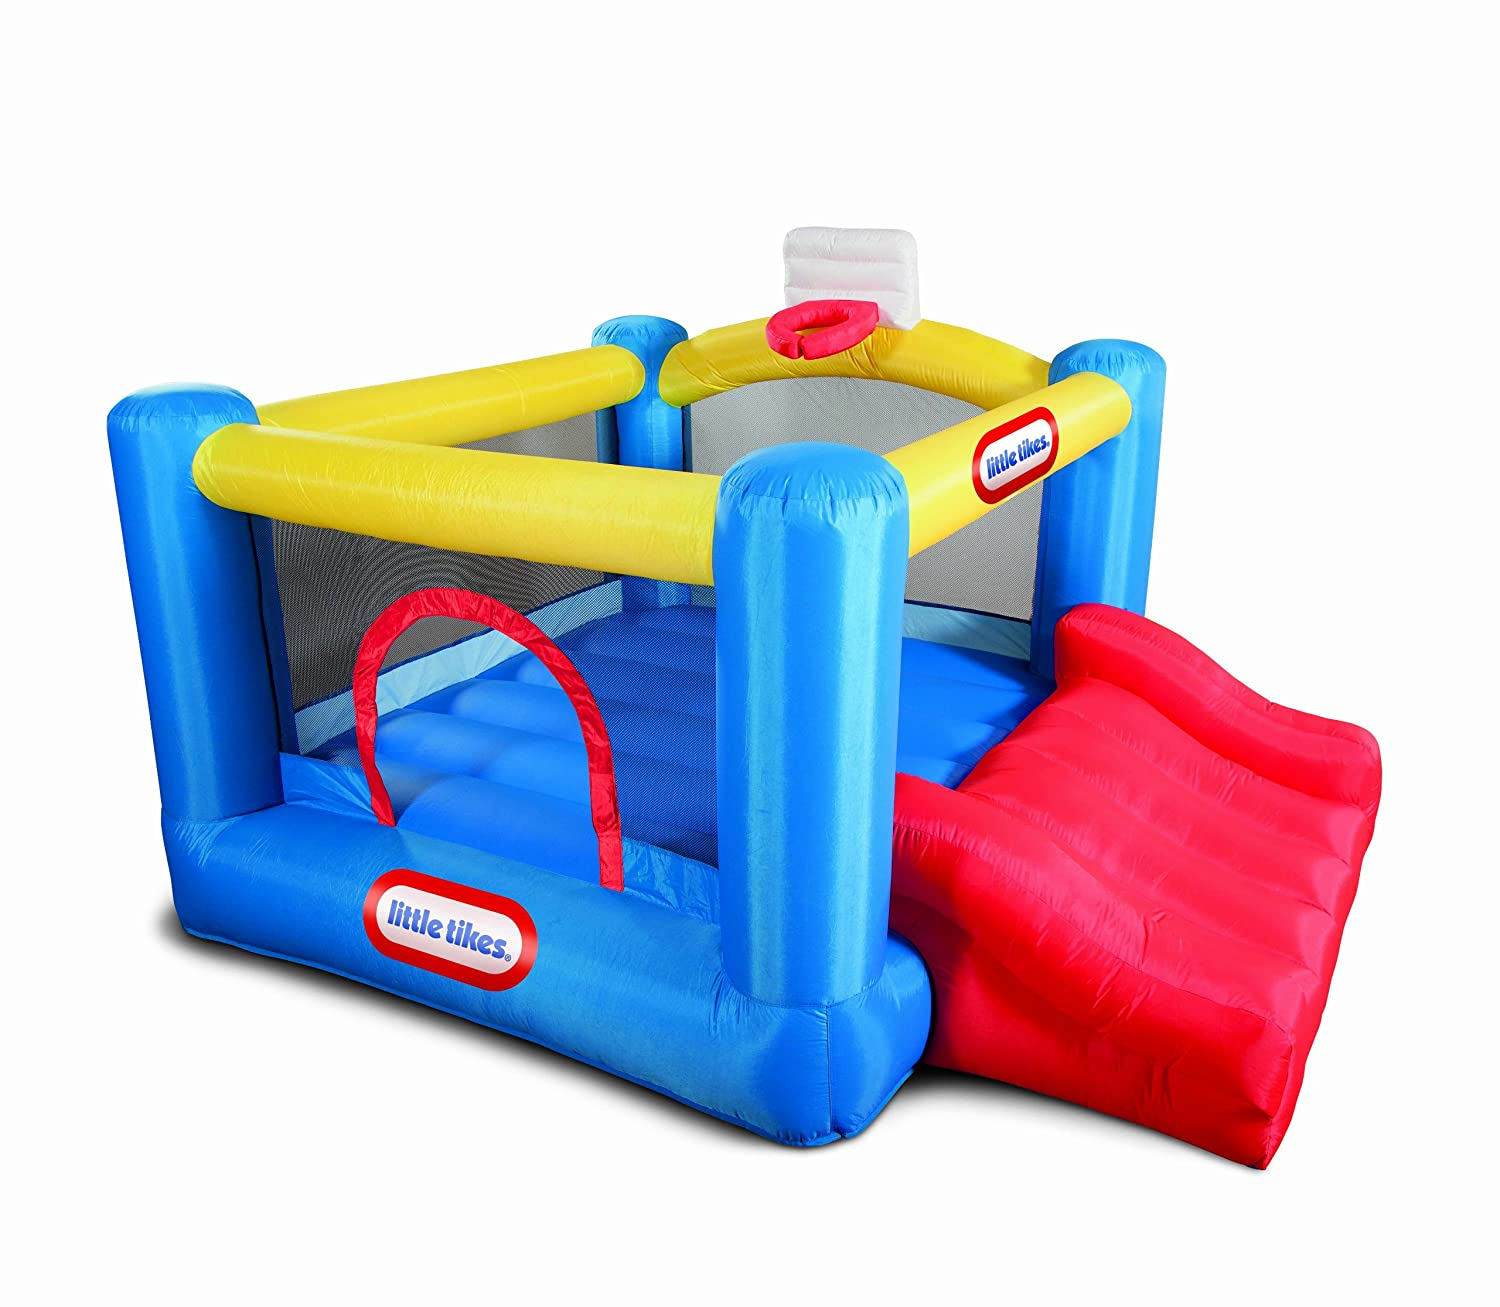 Amazon Little Tikes Junior Sports n Slide Bouncer Toys & Games